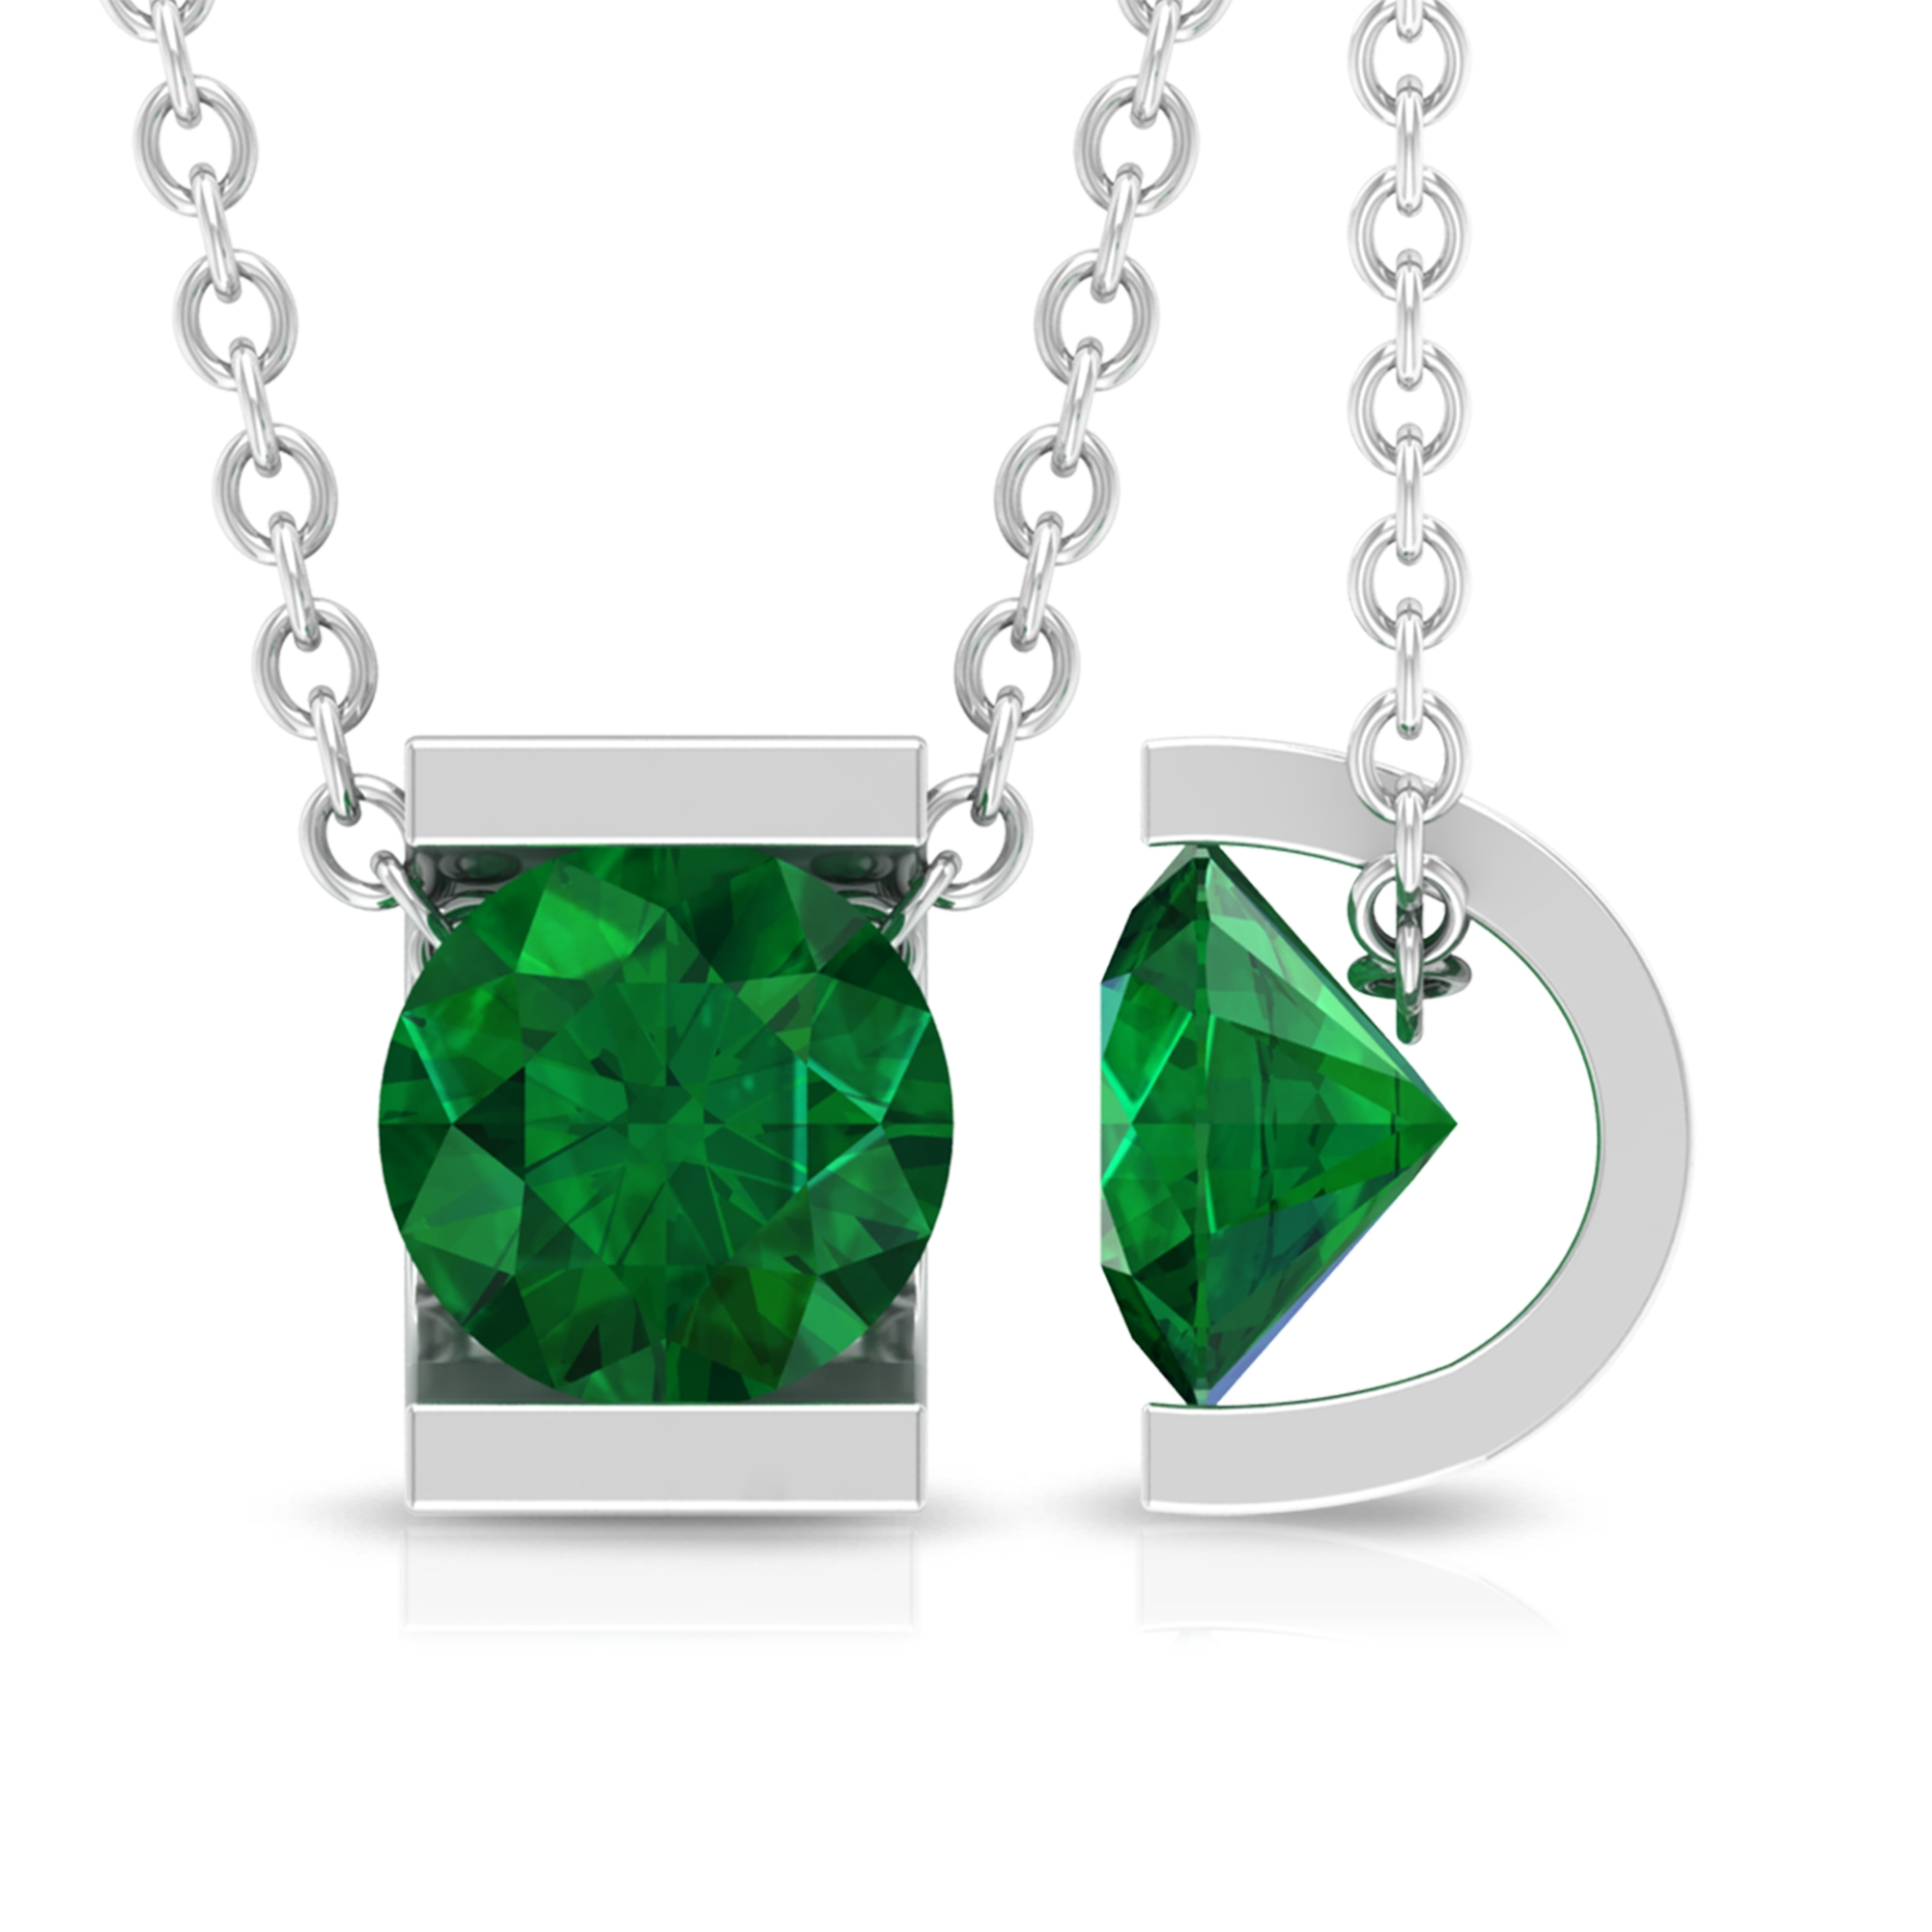 5 MM Round Cut Emerald Solitaire Pendant in Bar Setting